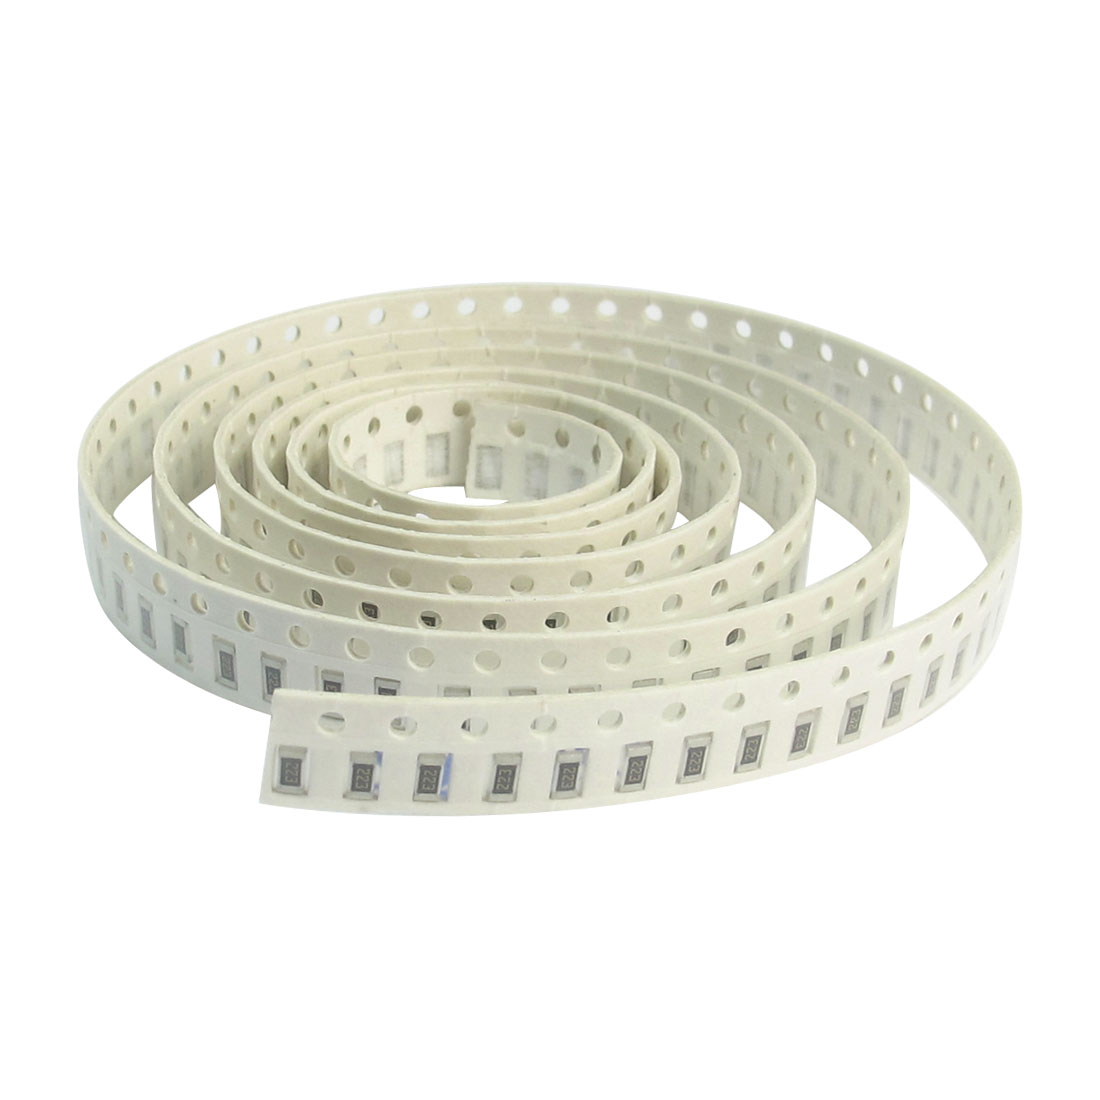 200Pcs 1206 22K ohm Resistance 1/4Watt 5% Tolerance Flexible Surface Mount SMD SMT Chip Resistors Strips